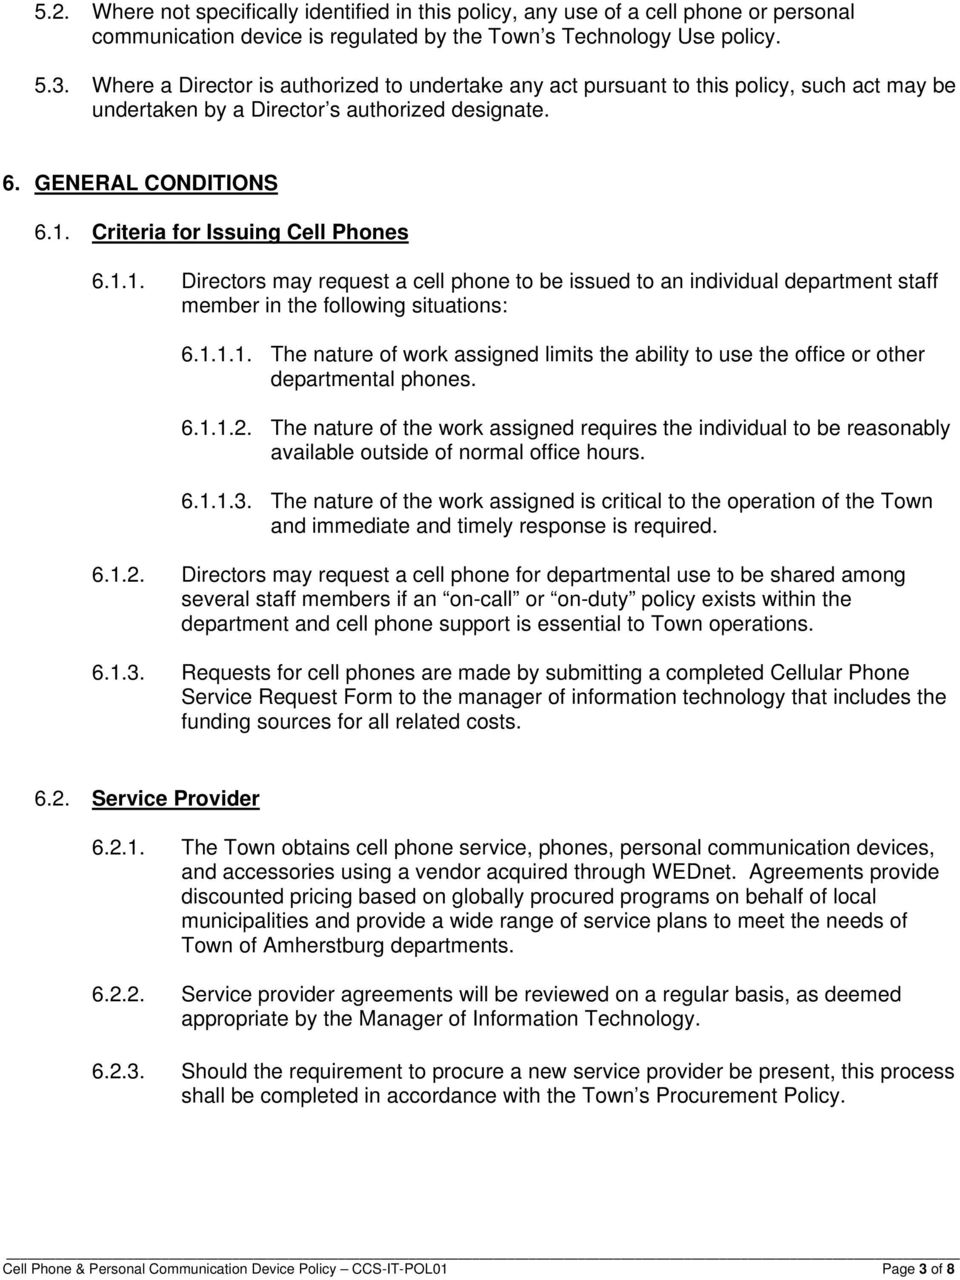 Criteria for Issuing Cell Phones 6.1.1. Directors may request a cell phone to be issued to an individual department staff member in the following situations: 6.1.1.1. The nature of work assigned limits the ability to use the office or other departmental phones.